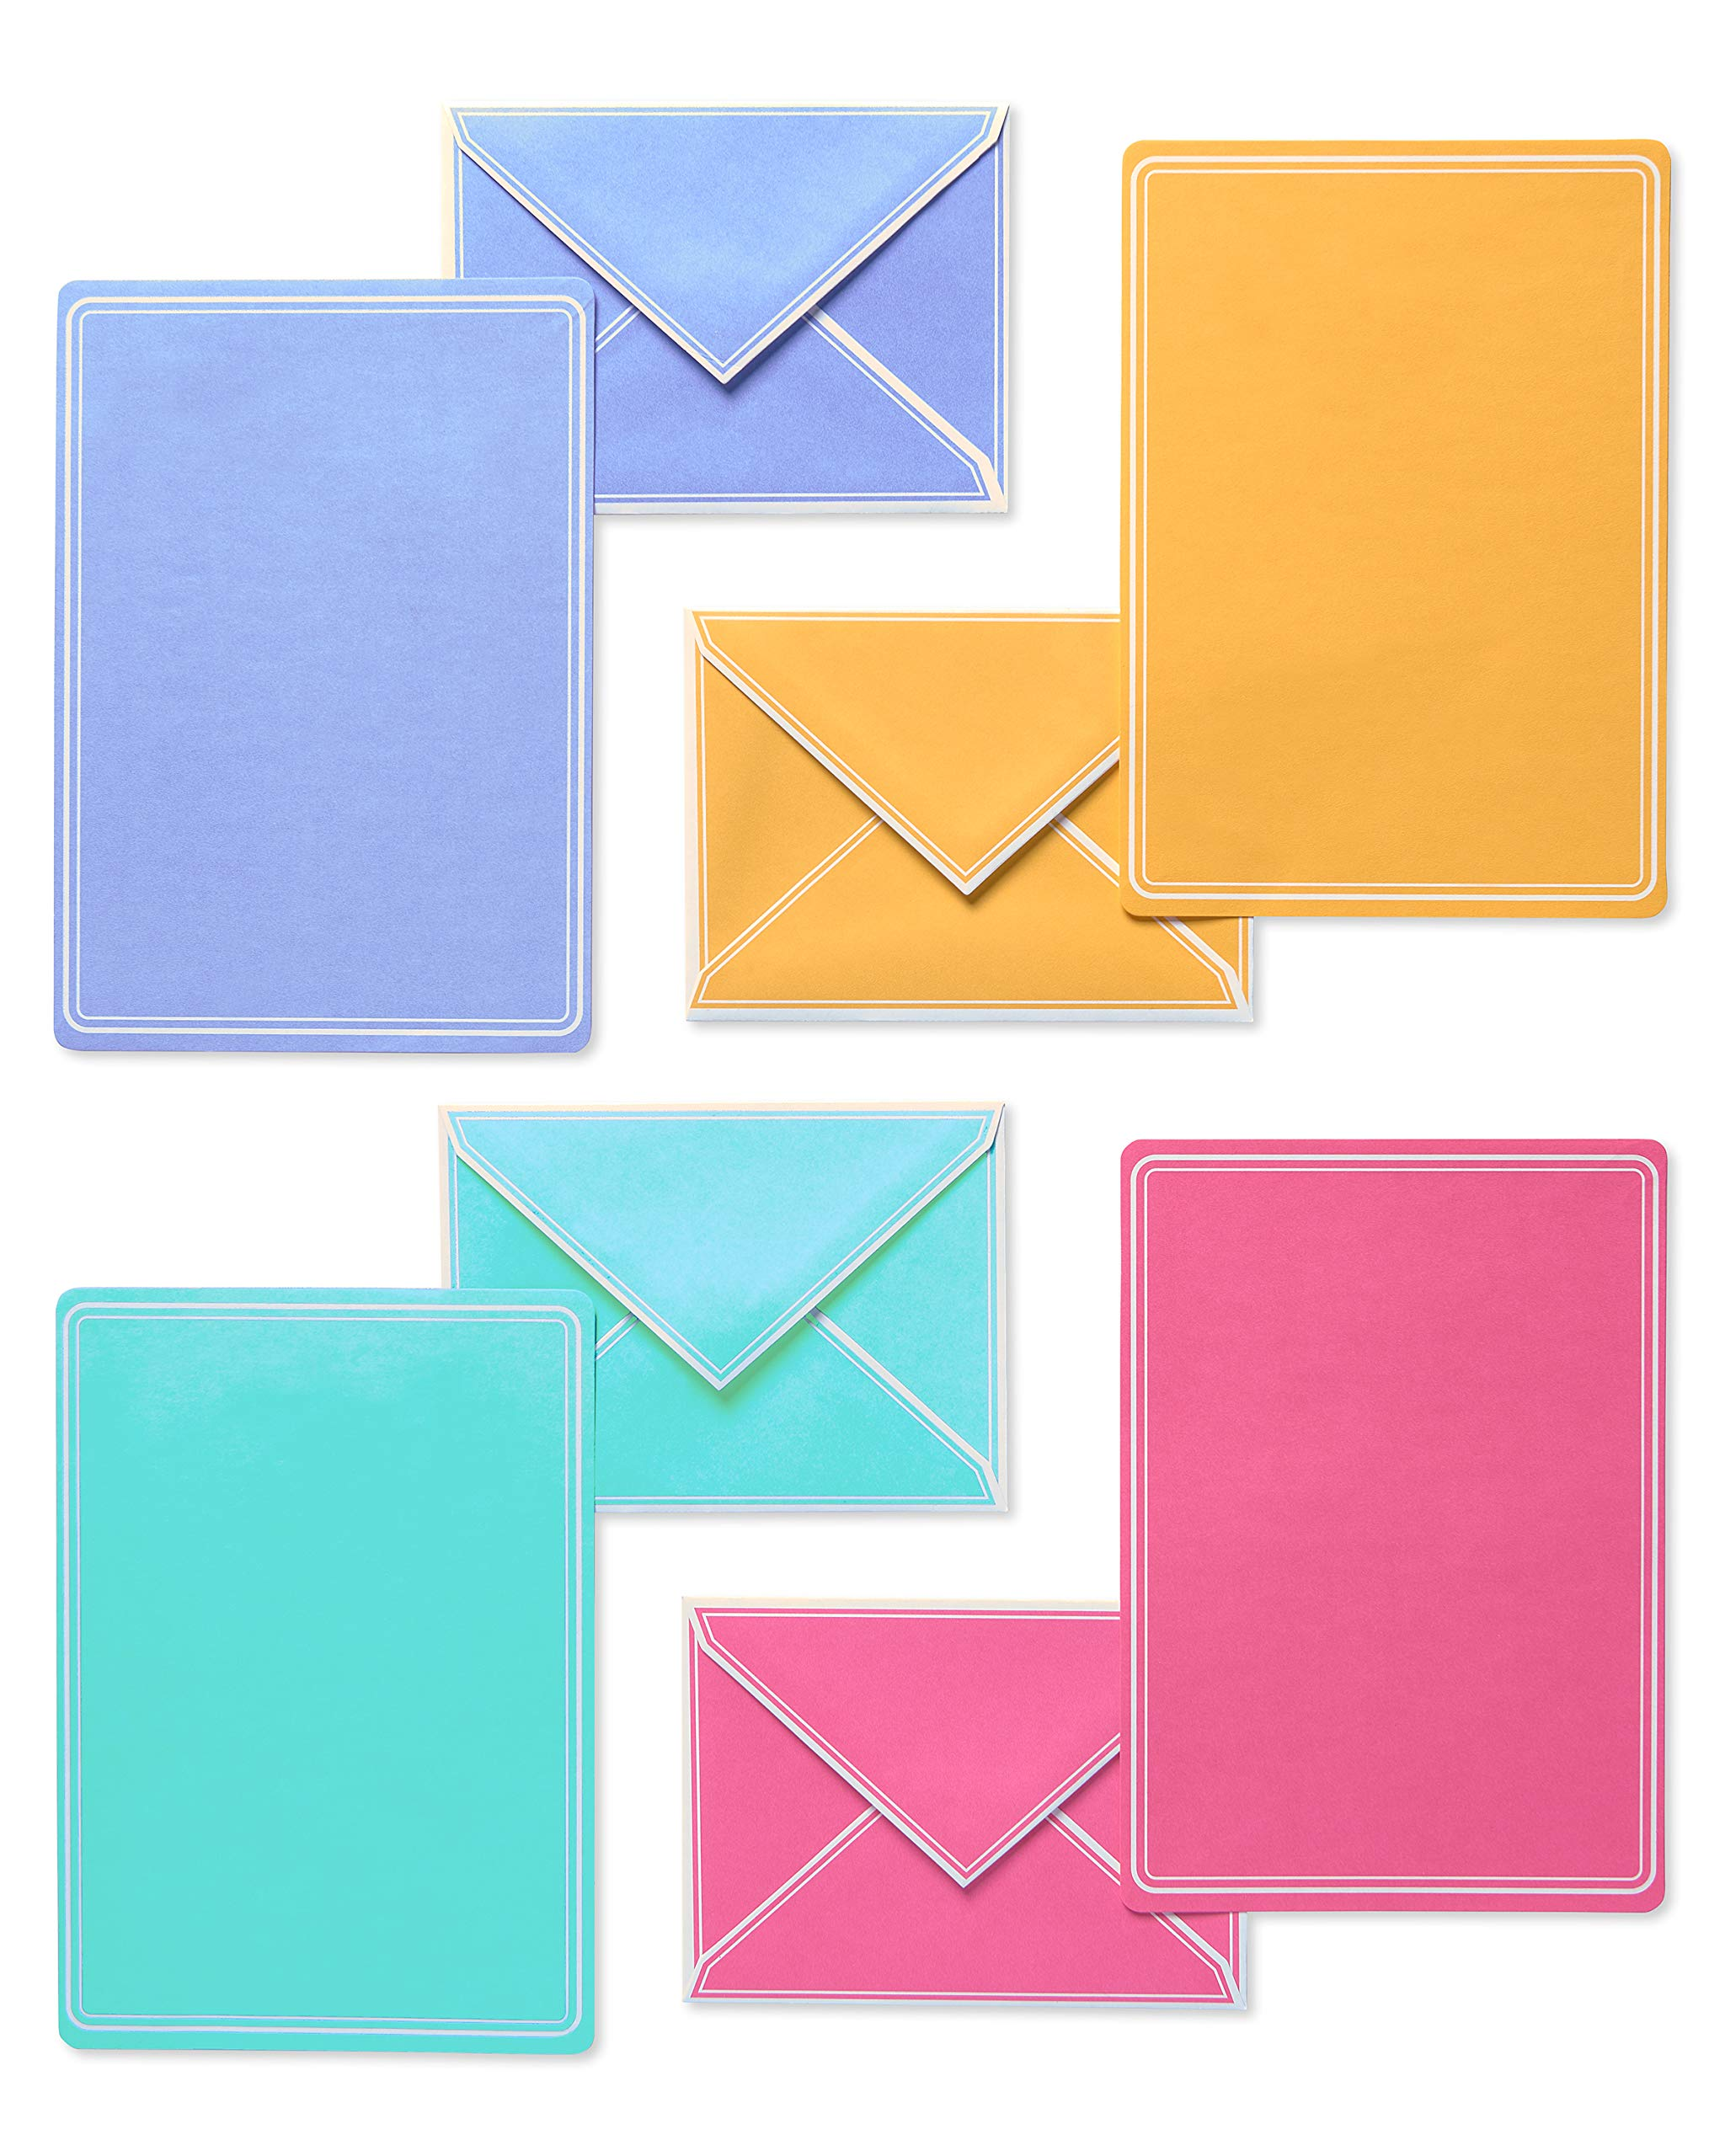 American Greetings Pastel Stationery Sheets and Colored Envelopes, 80-Count